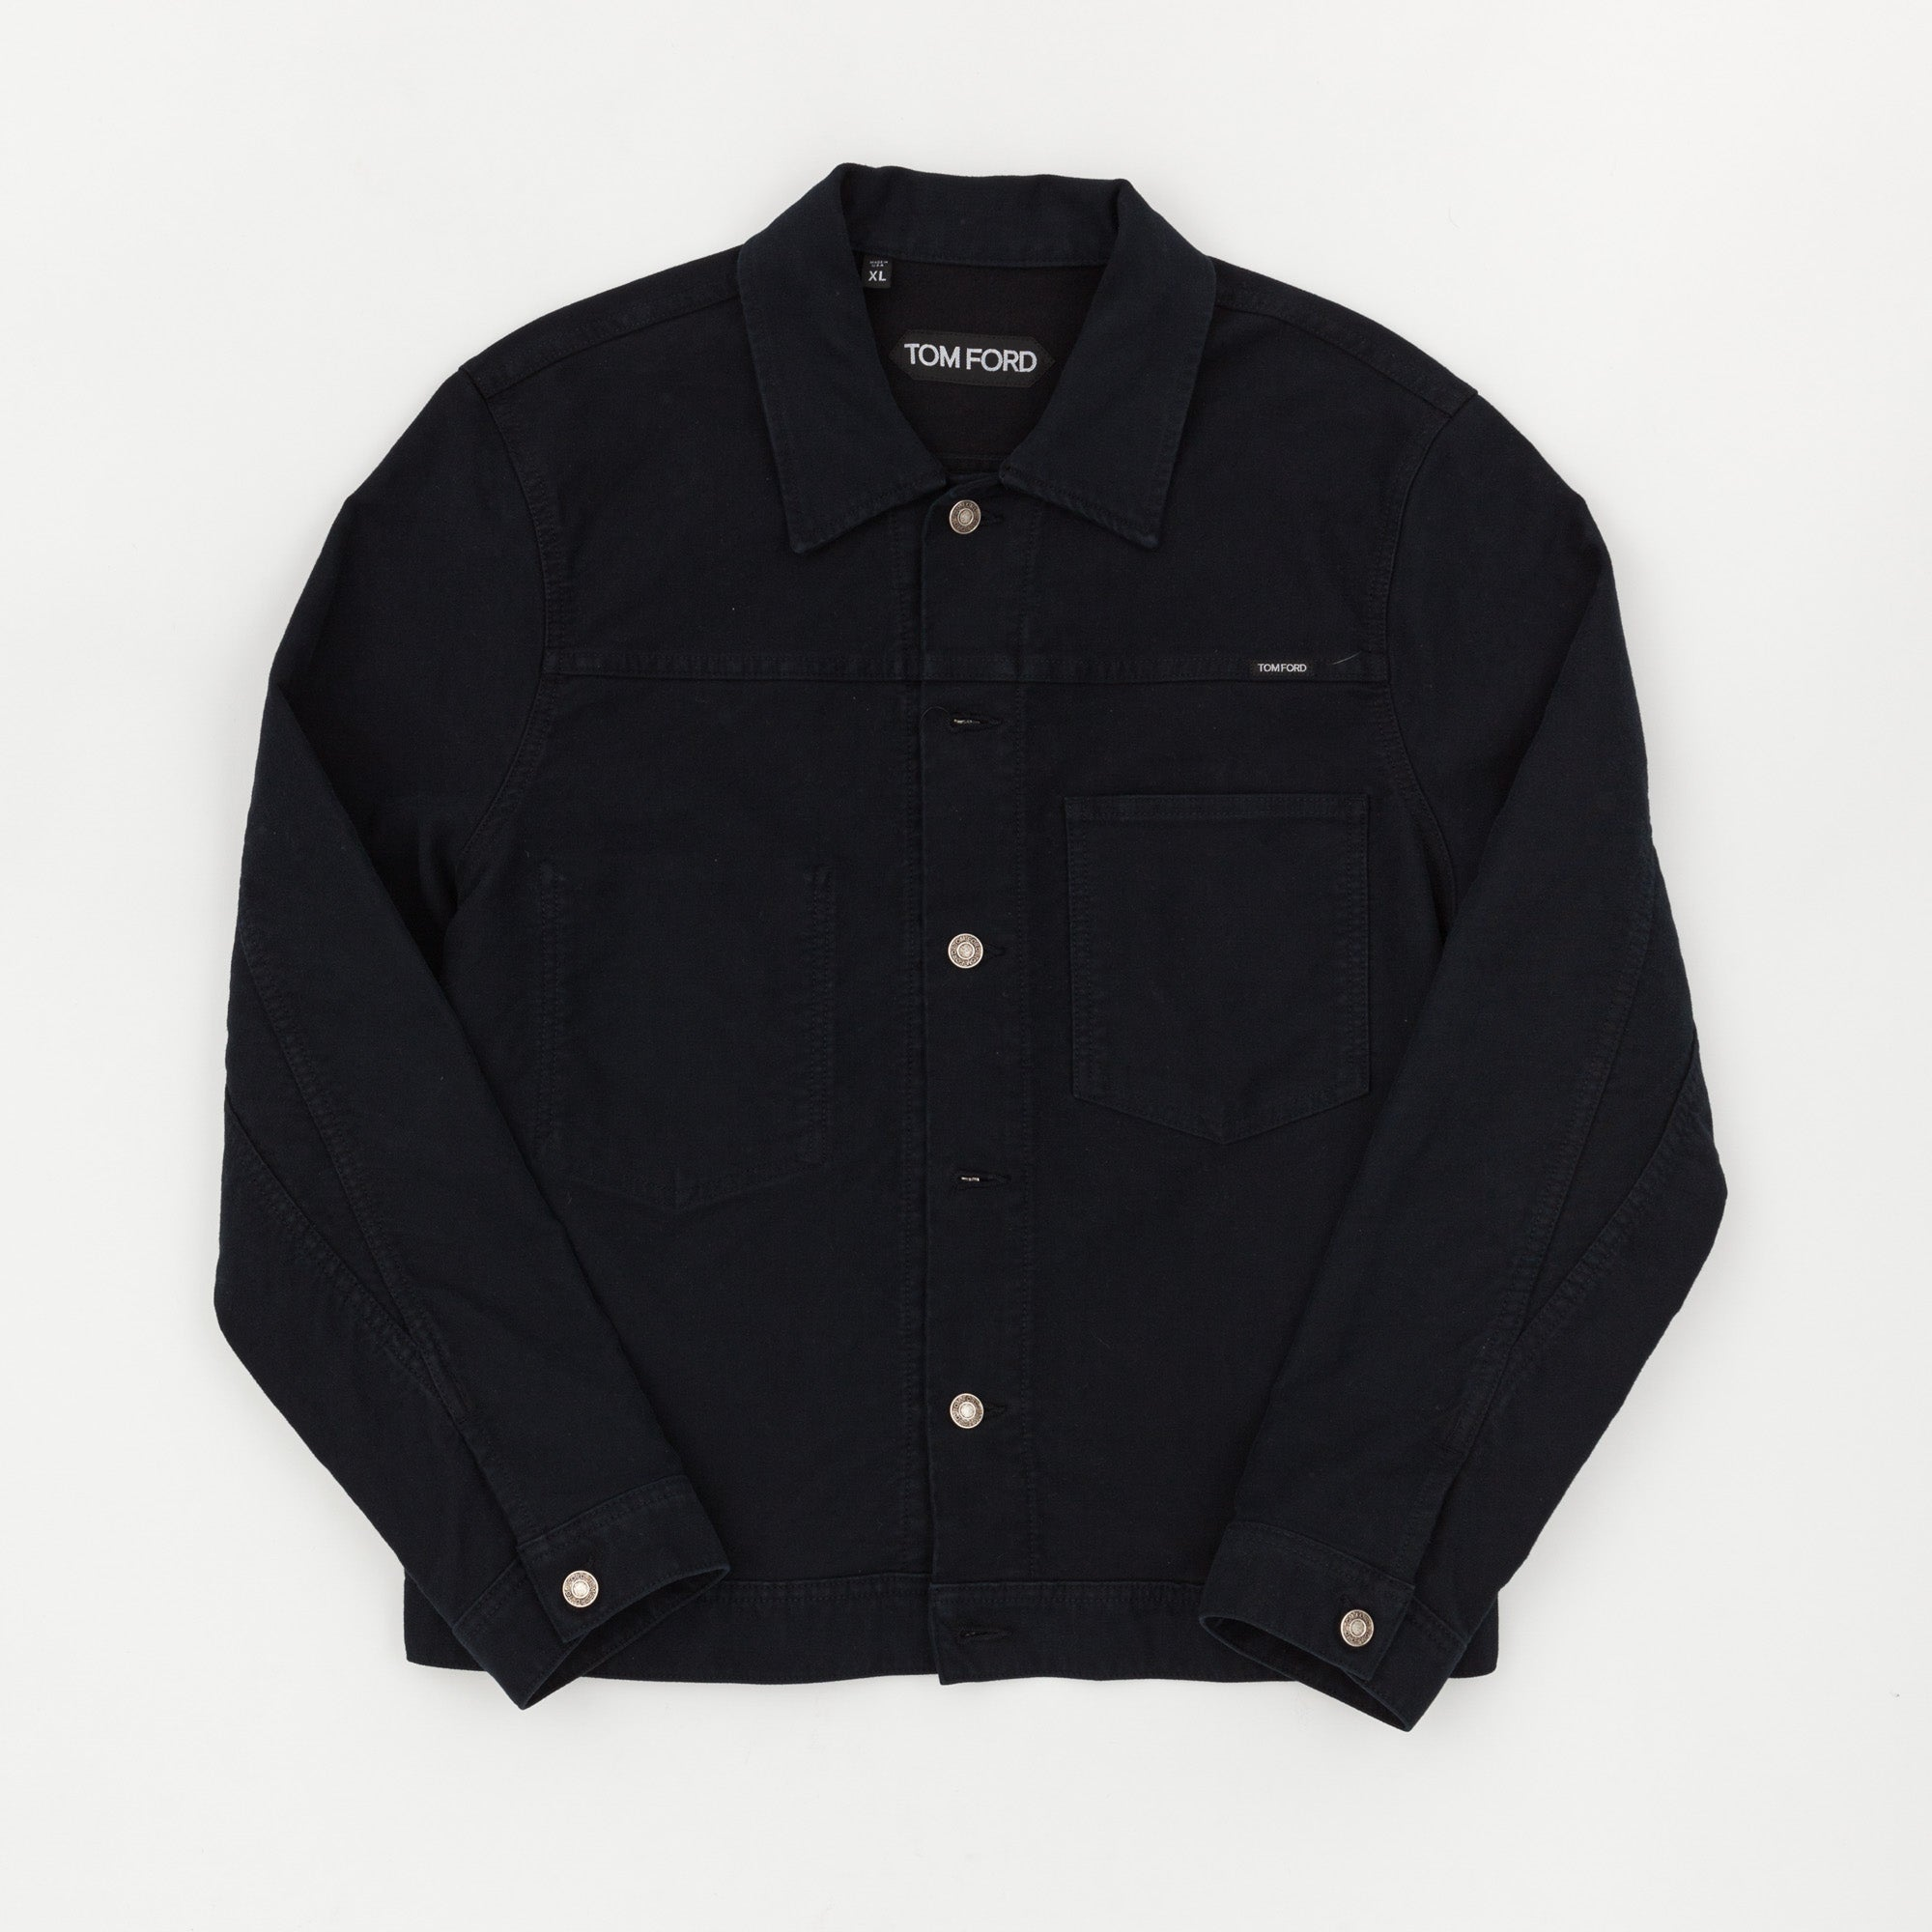 Tom Ford Brushed Cotton Trucker Jacket